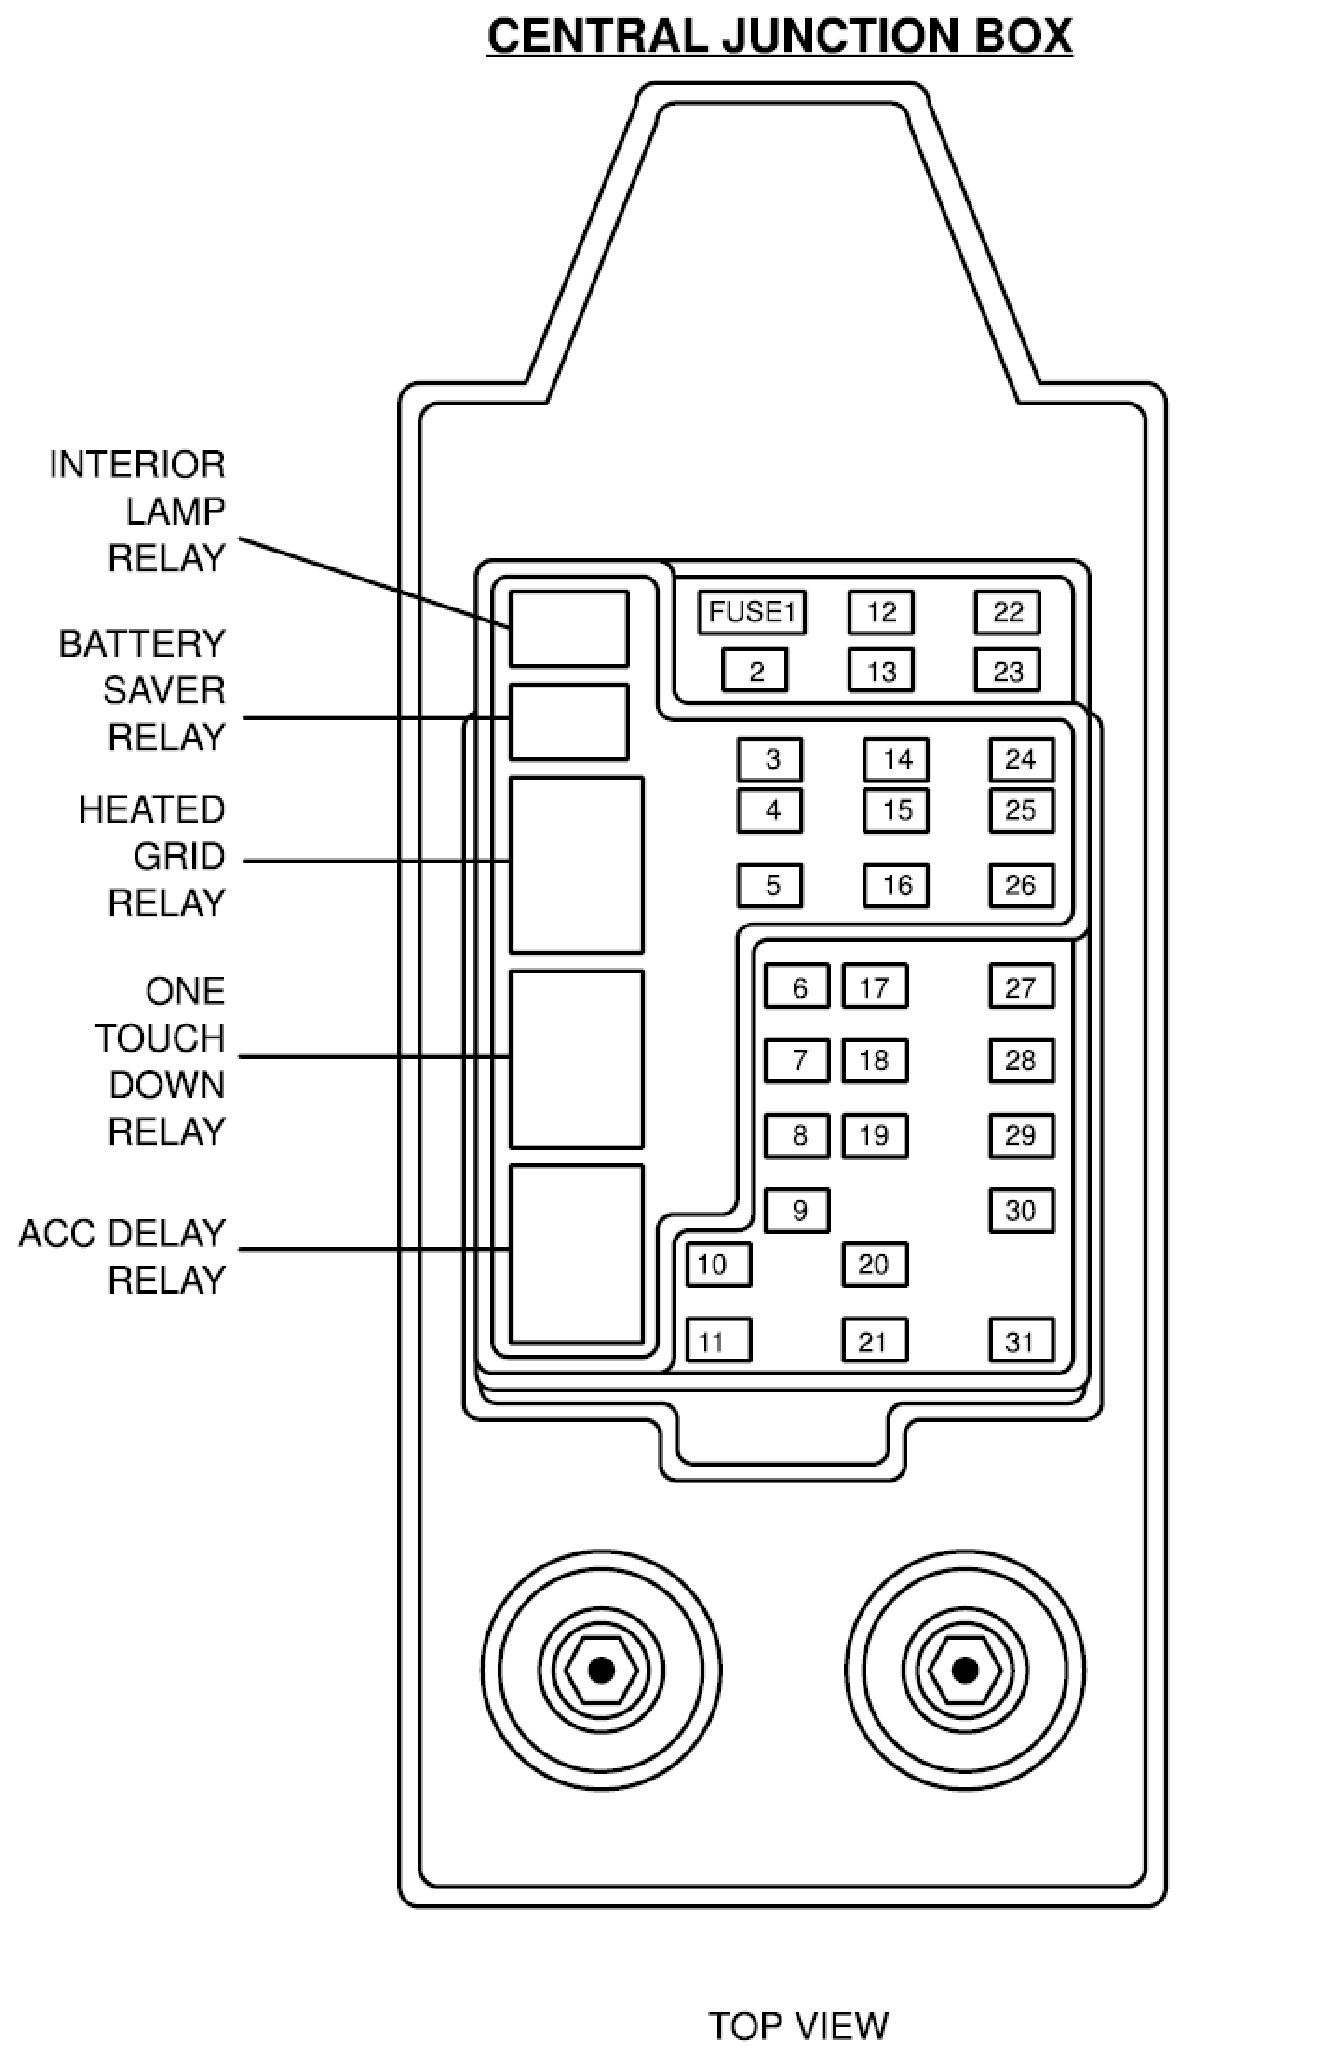 F Fuse Panel also Ford Excursion Fuse Box Diagram Passenger  partment also I Find A Diagram For Both Fuse Boxes On My Expedition Wd Intended For Ford Expedition Xlt Fuse Box Diagram likewise Original besides Sc. on 2000 expedition fuse panel diagram